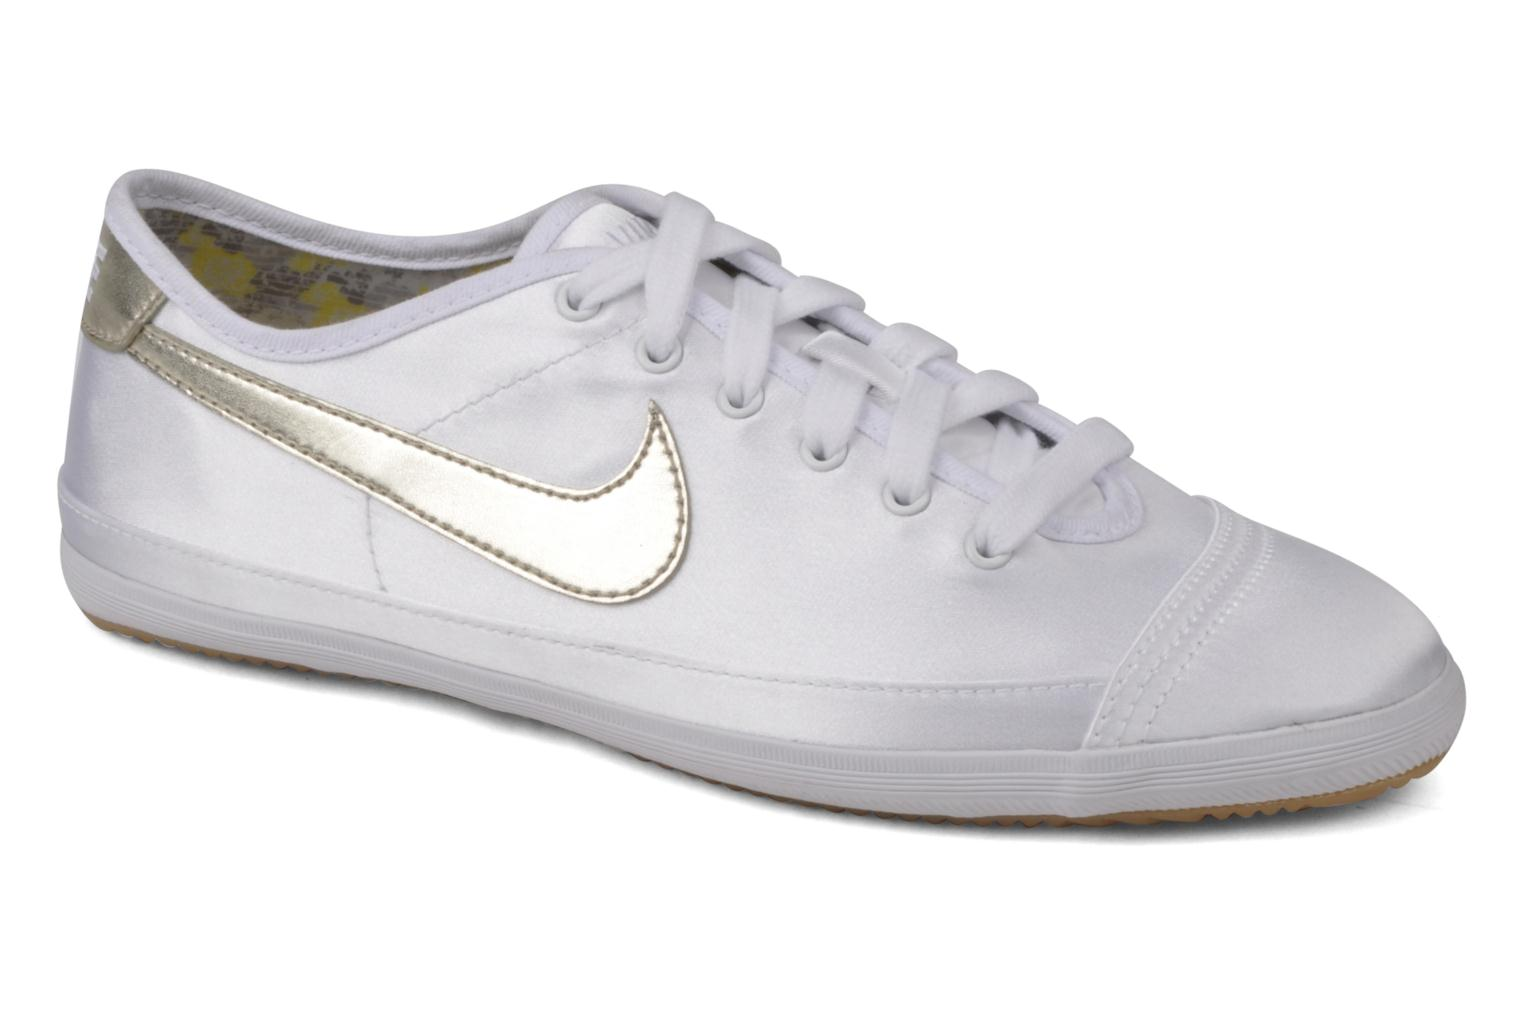 official photos e1d13 8624a ... new zealand trainers nike wmns nike flash mtr white detailed view pair  view 09b0d 78f20 ...